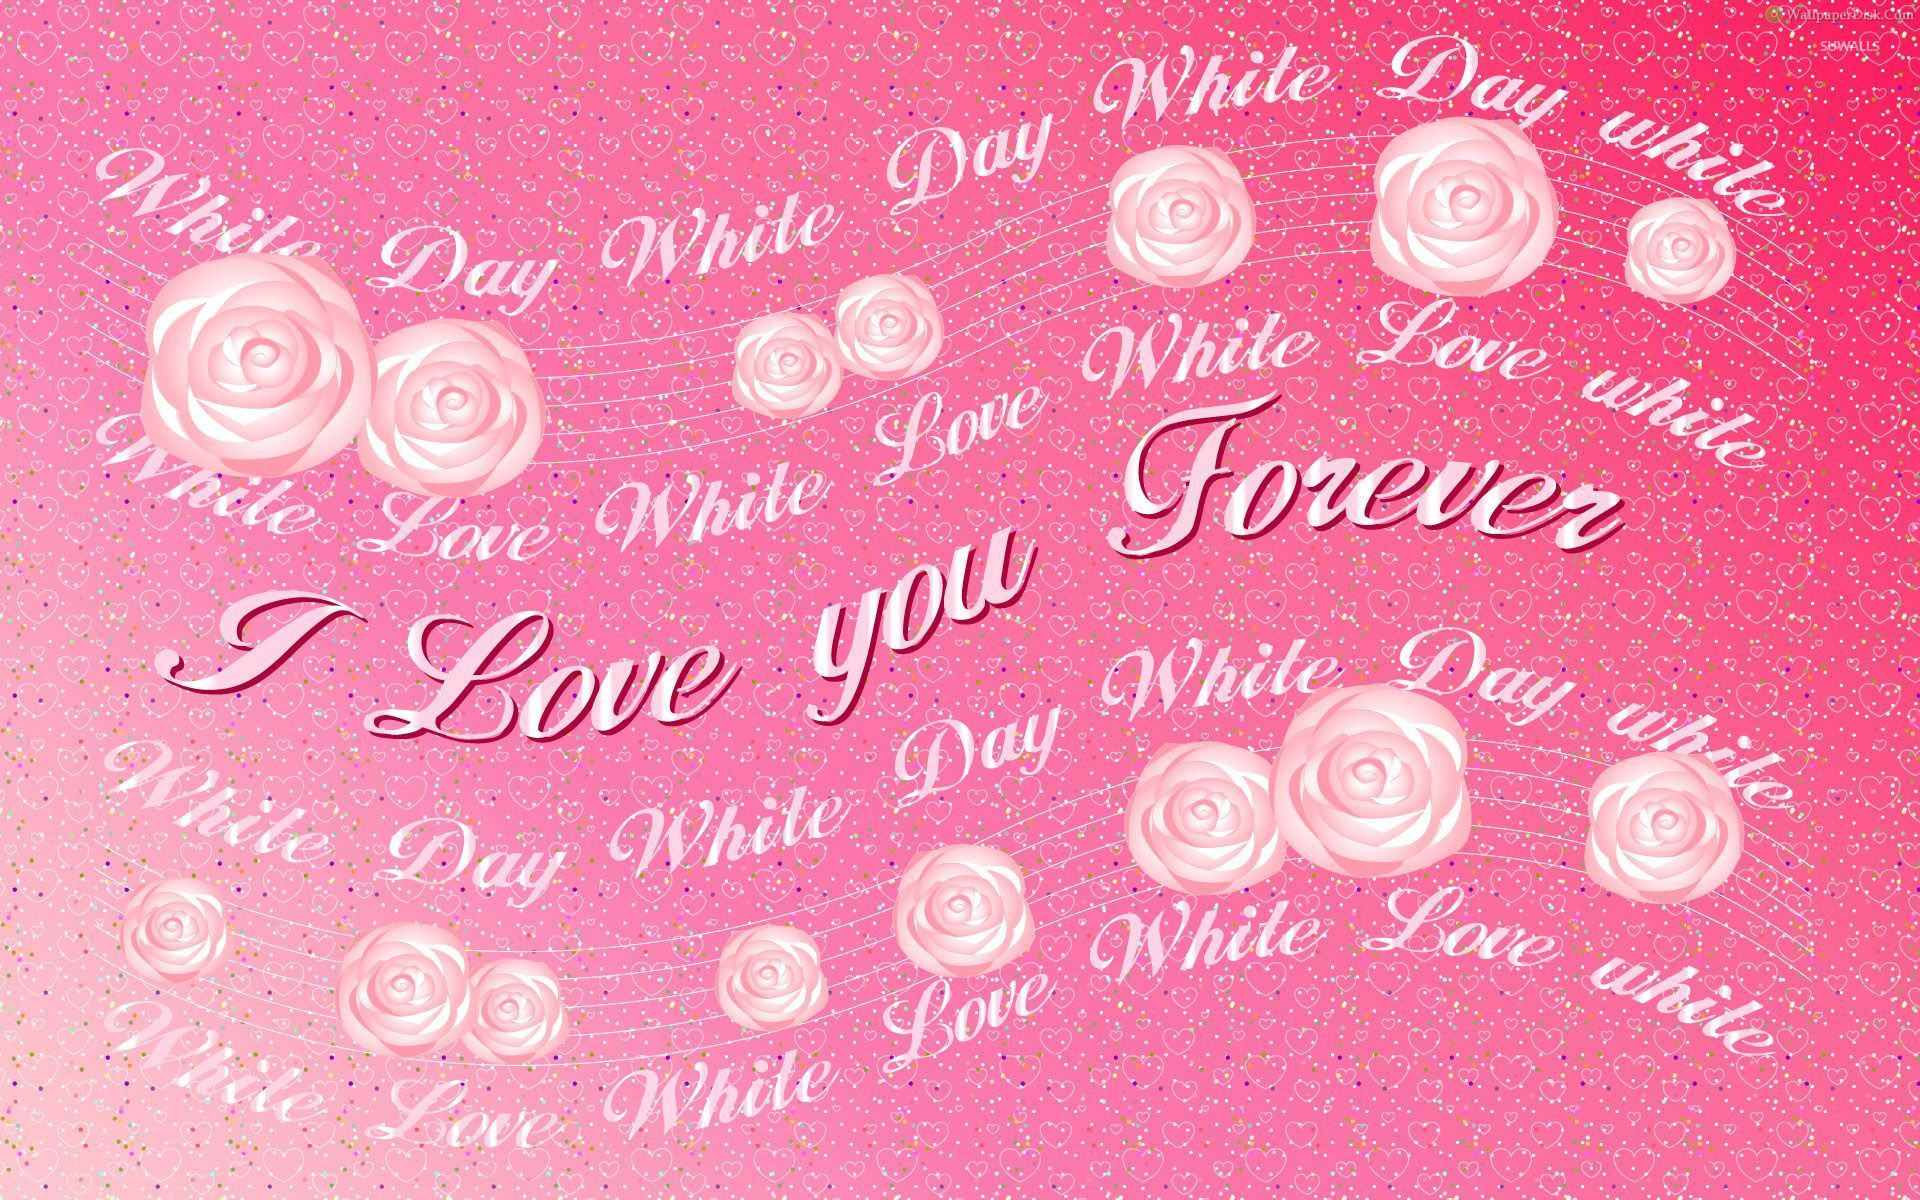 Love Forever Wallpapers : I love you forever wallpaper - Holiday wallpapers - #51343